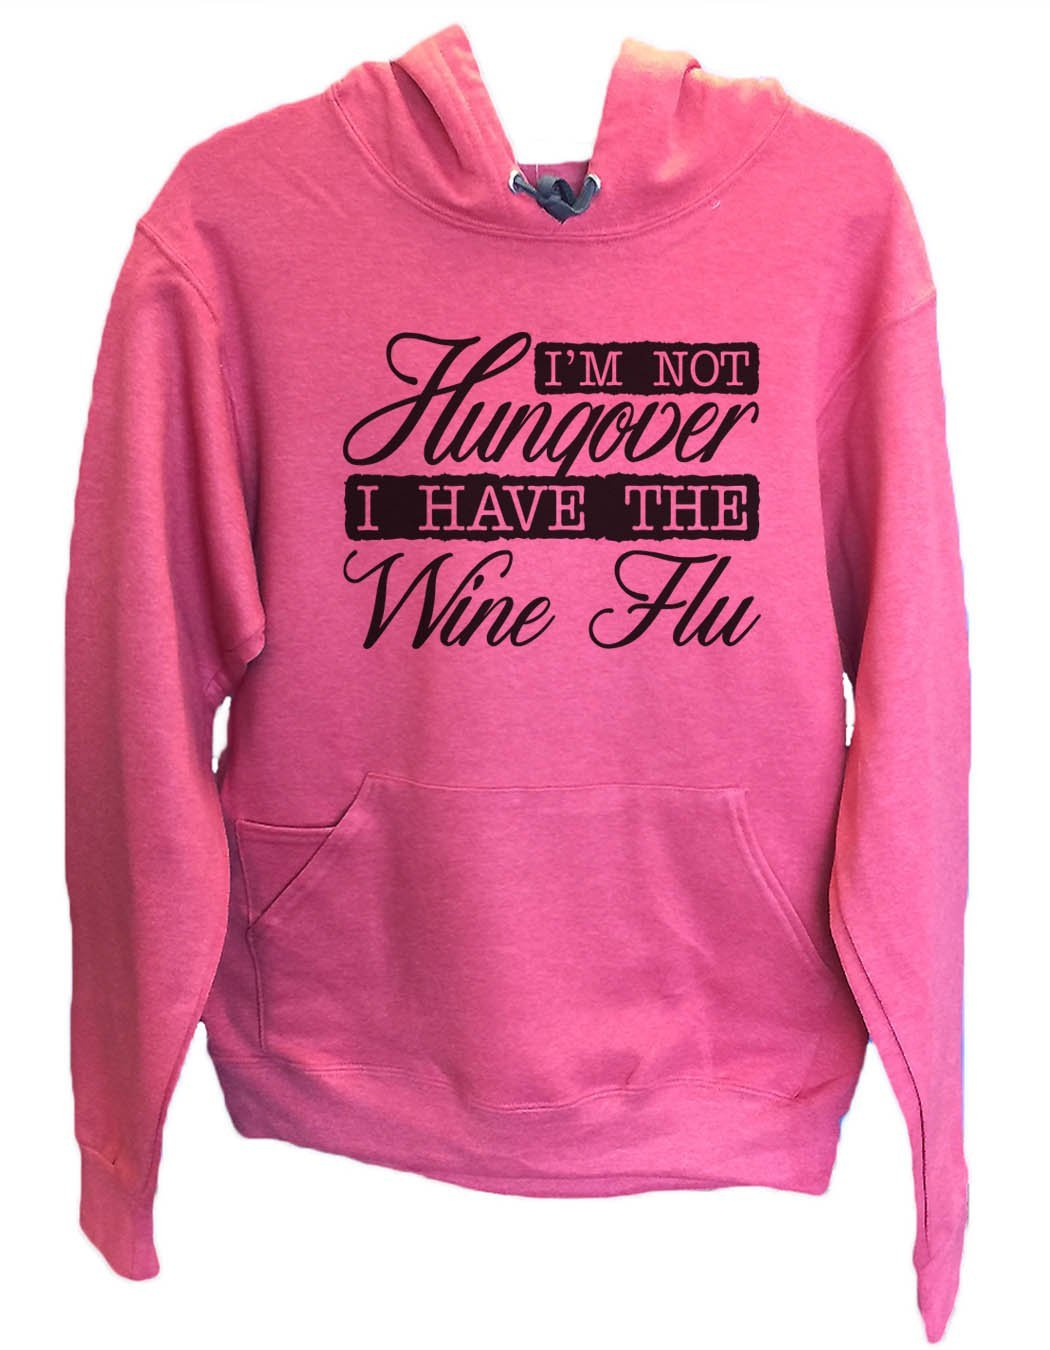 UNISEX HOODIE - I'm Not Hungover I Have The Wine Flu - FUNNY MENS AND WOMENS HOODED SWEATSHIRTS - 2139 Funny Shirt Small / Cranberry Red